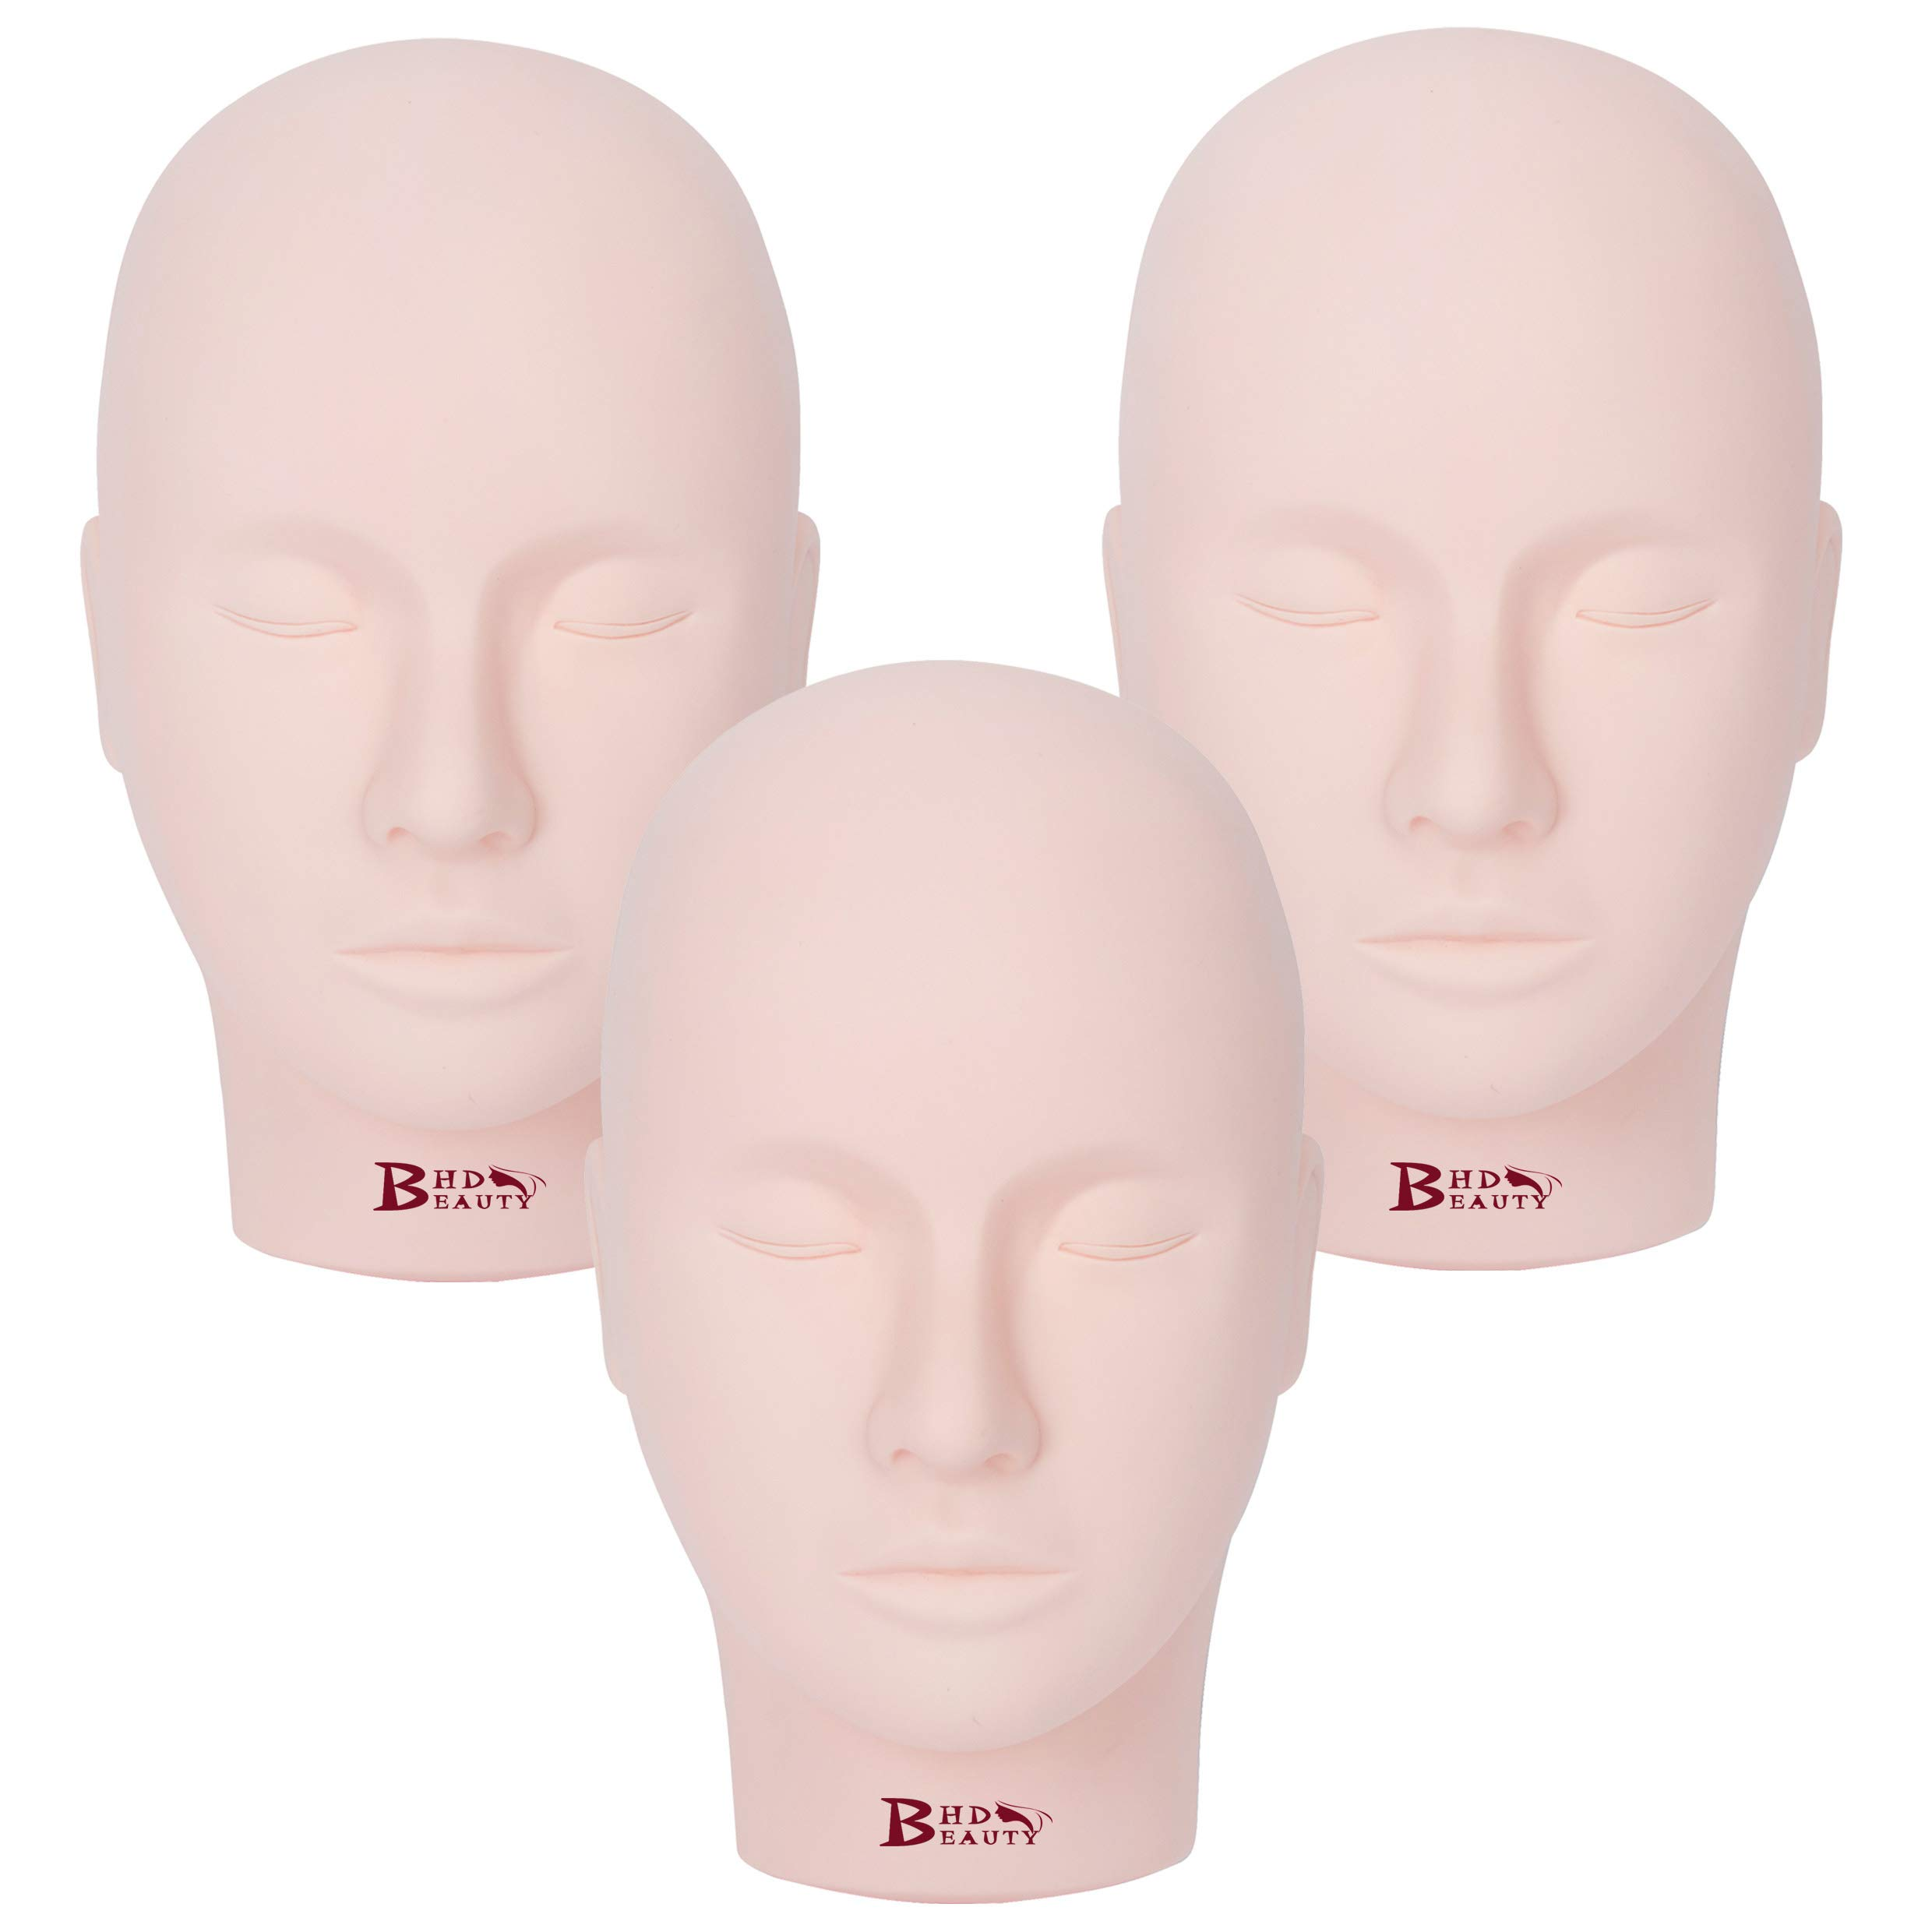 BHD BEAUTY Eyelash Practice Training Head for Makeup Cosmetology Beige Flat Soft PVC Material Head 3PCS with Mount Hole